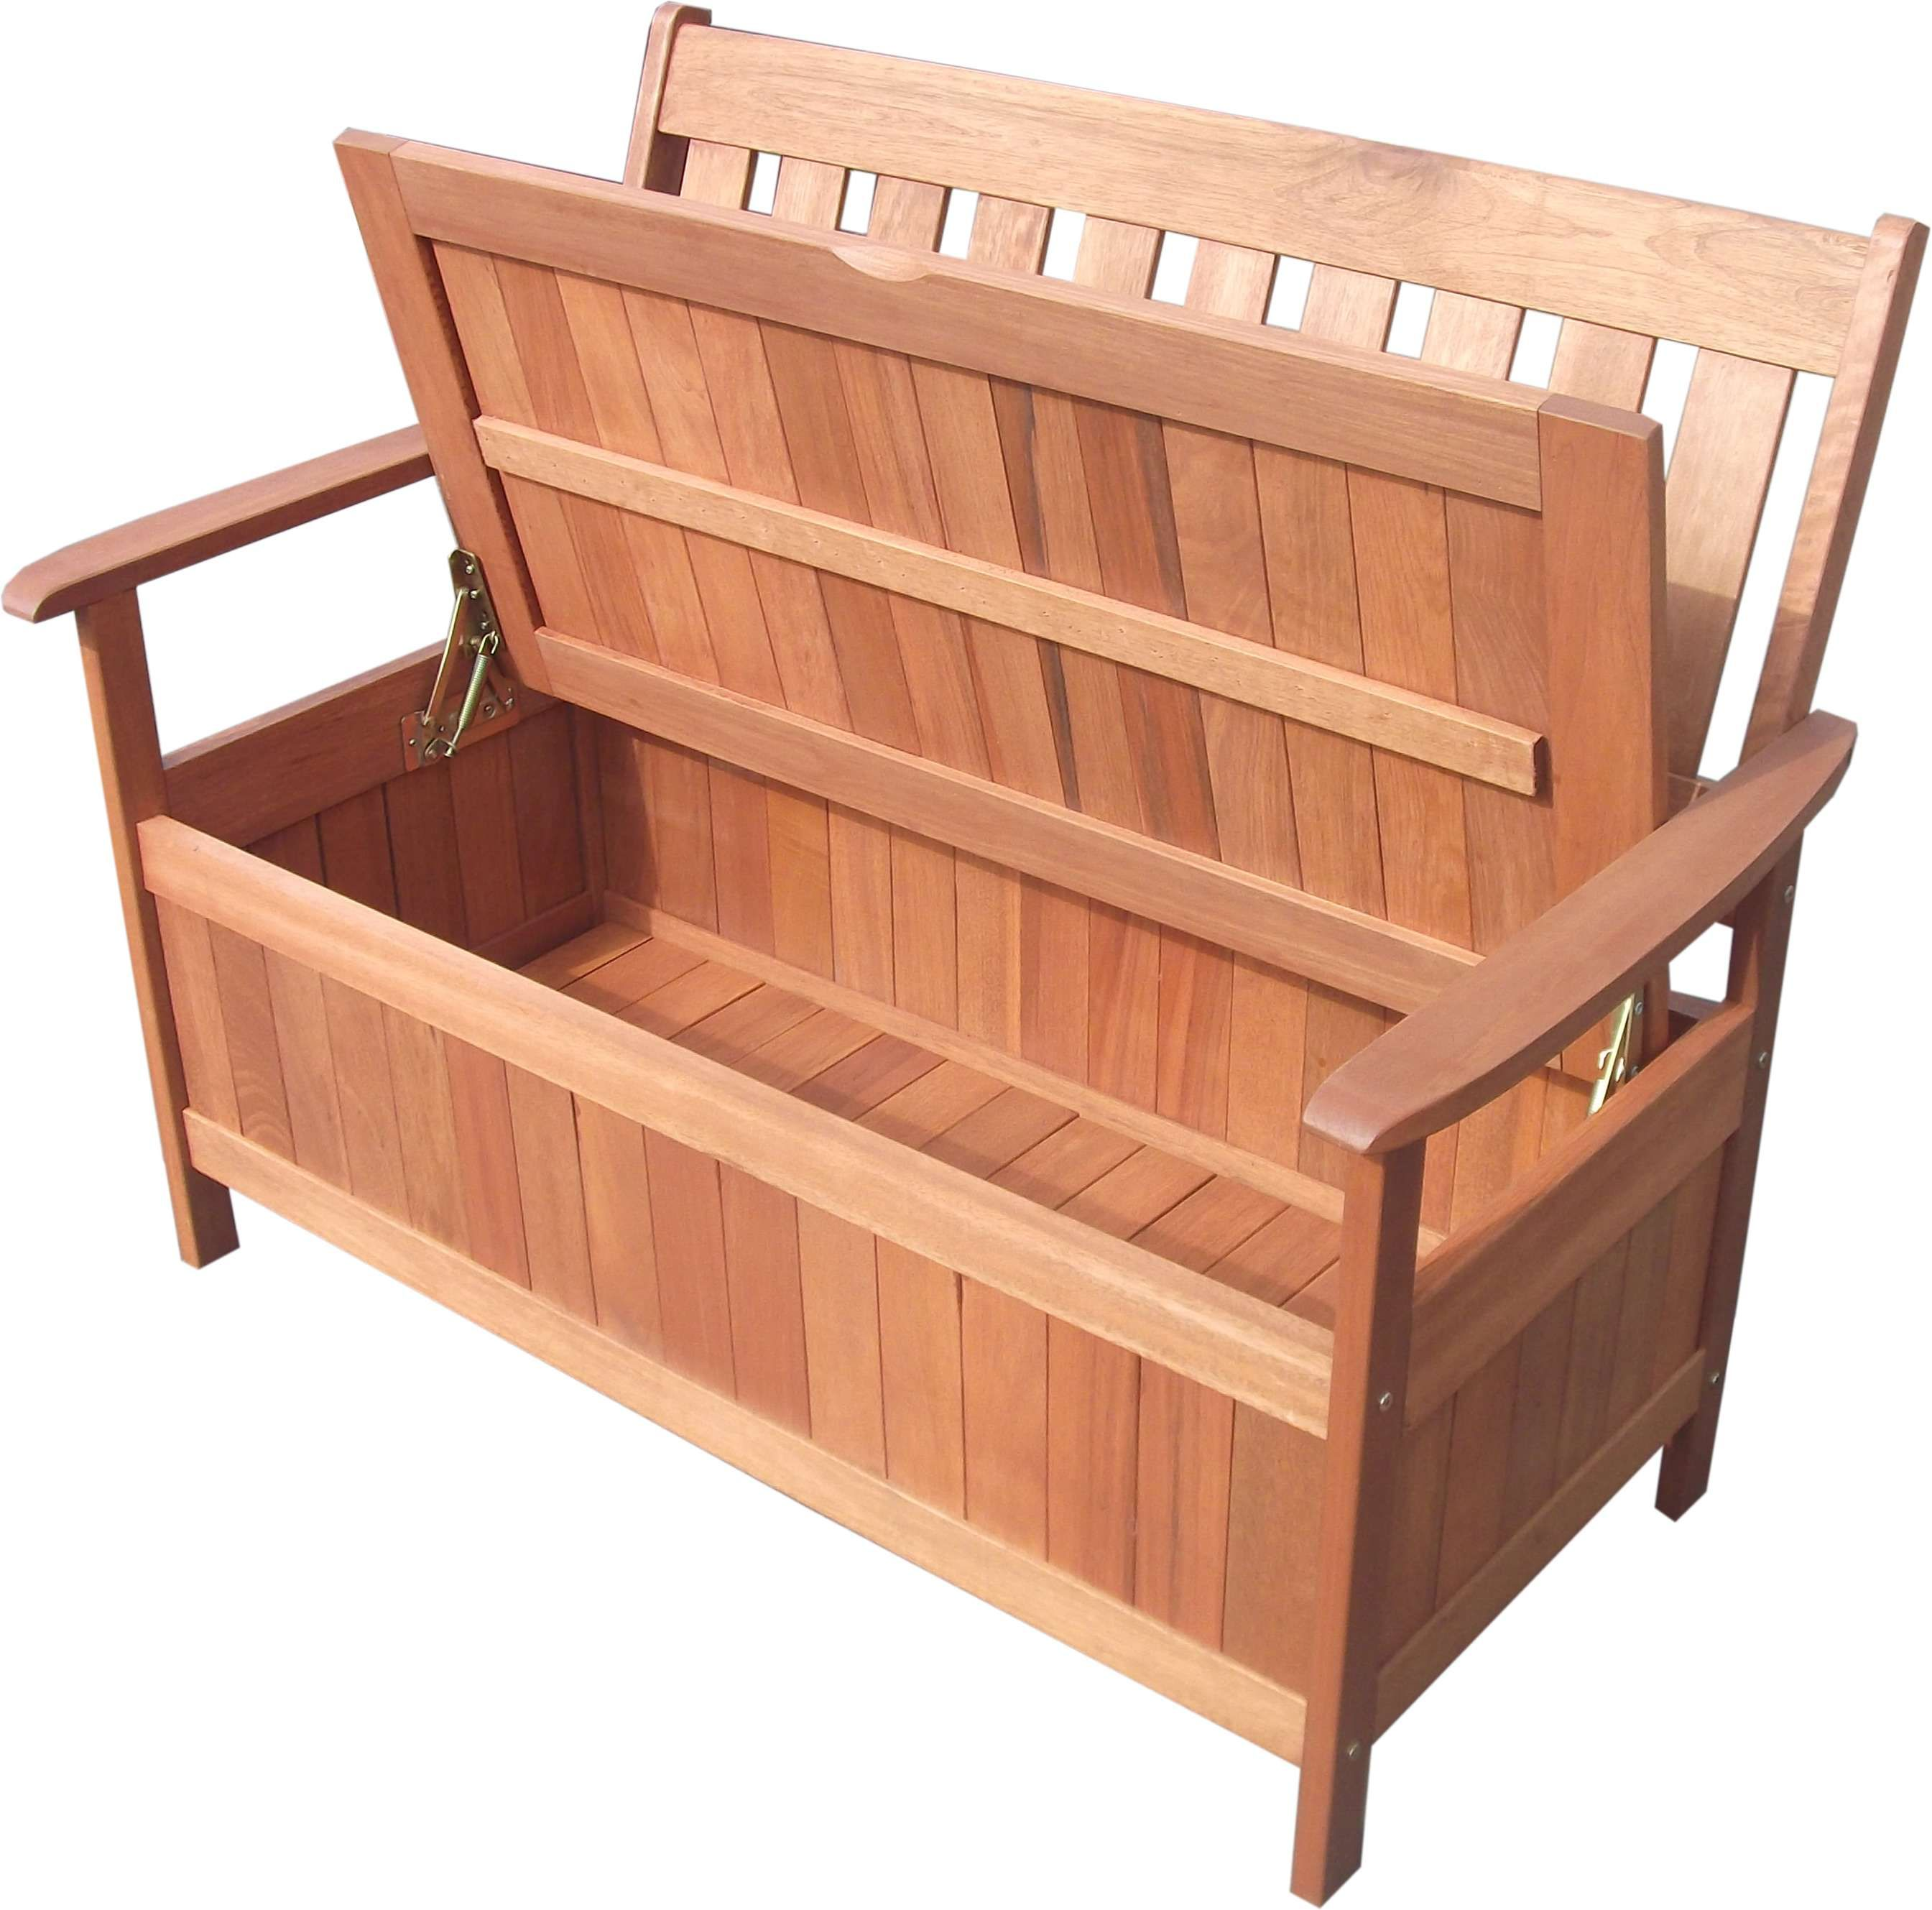 Bench Costco Patio Deck Box Planter Boxes Rubbermaid Chic From Rubbermaid Patio Storage Bench So Wooden Storage Bench Outdoor Storage Bench Bench With Storage